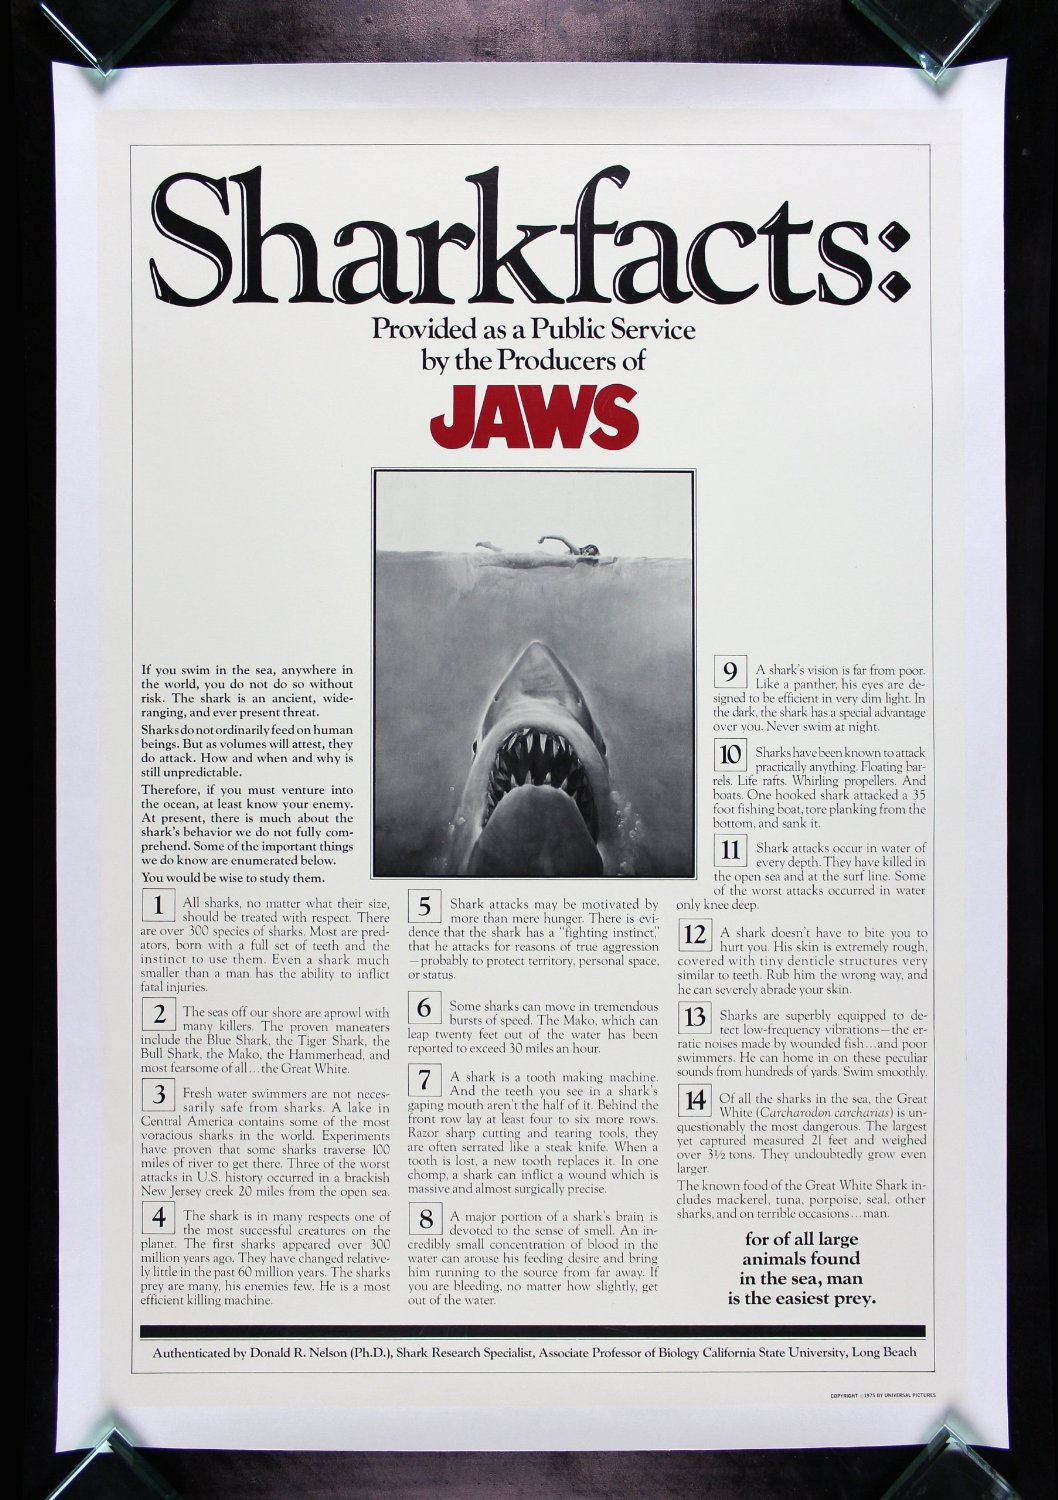 Jaws Vintage - Backcountry - Bears vs. Sharks: What's Scarier?